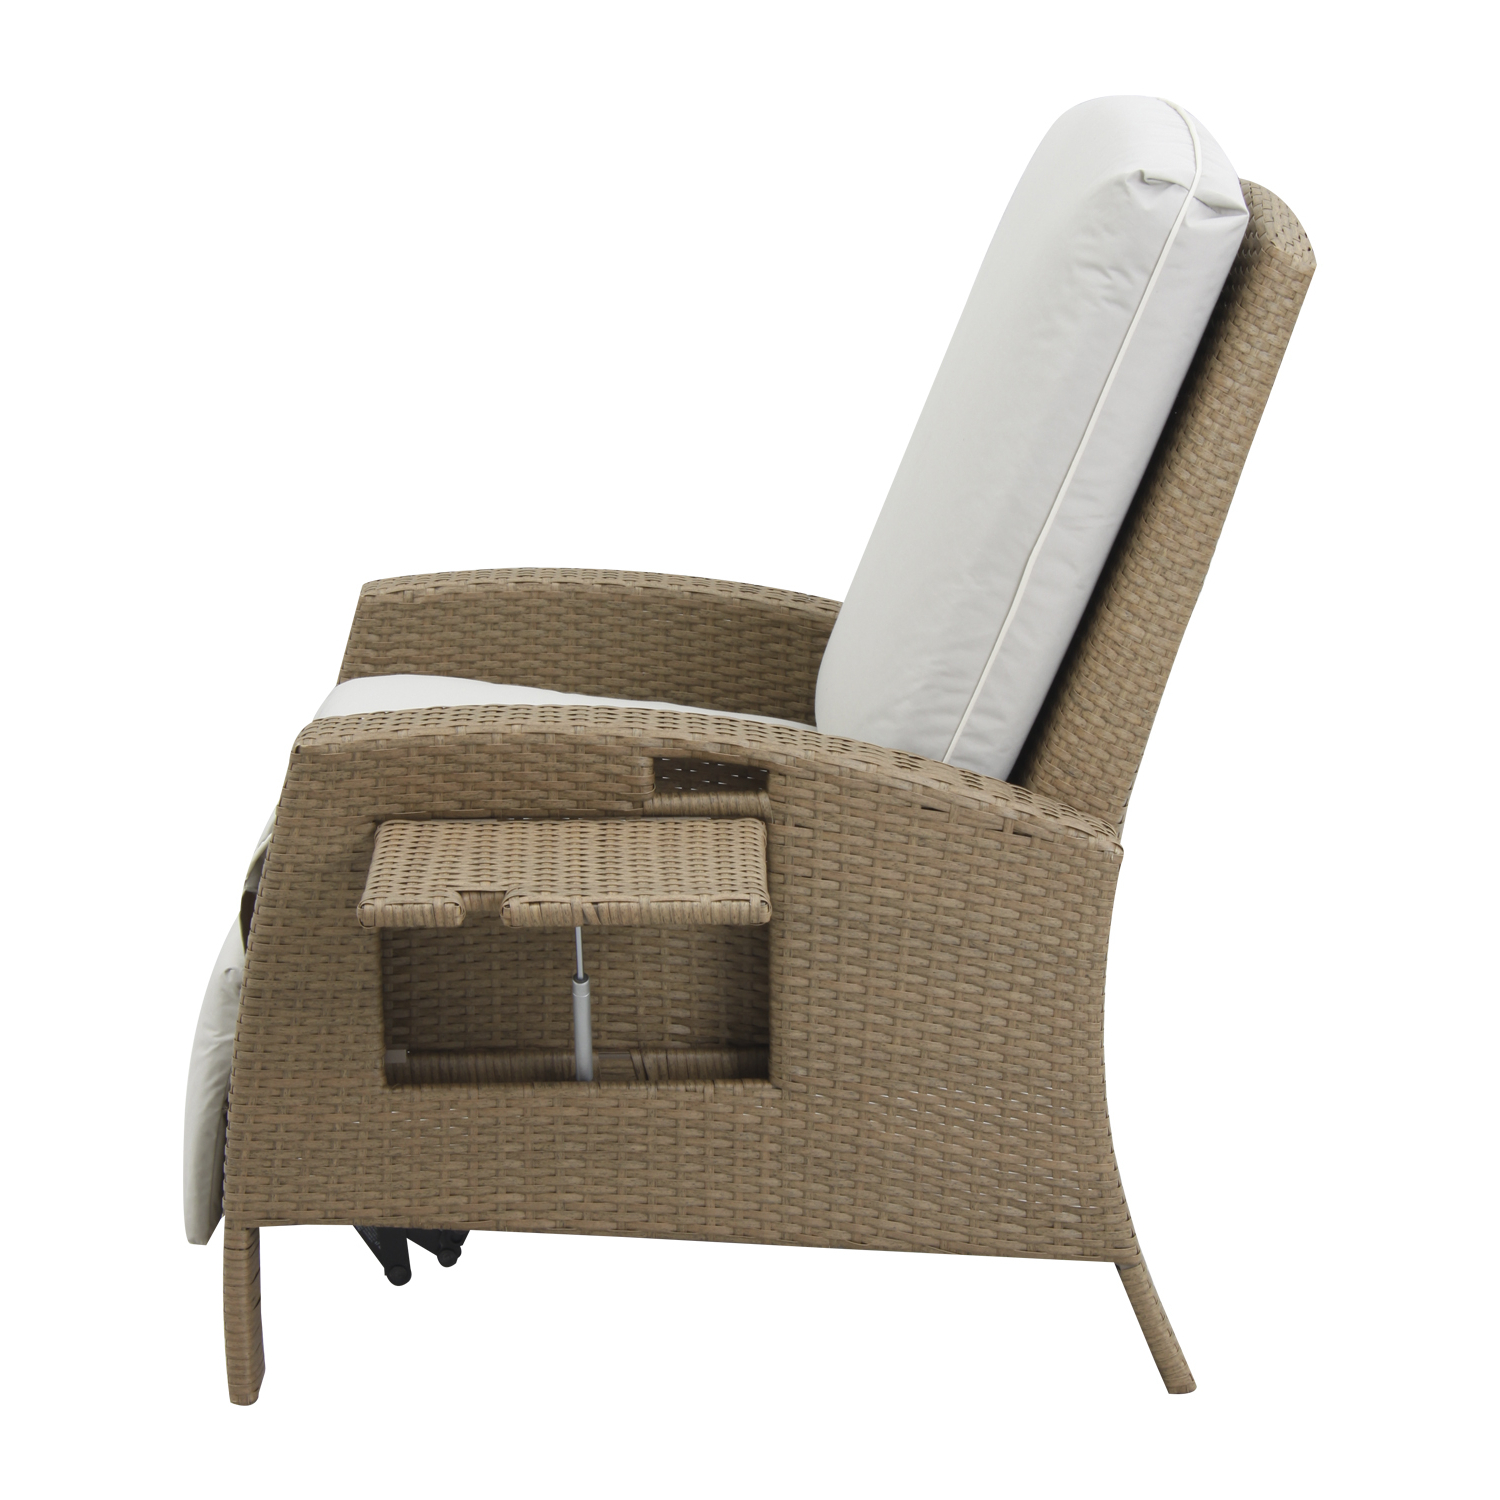 Outdoor Adjustable Rattan Wicker Recliner Chairs With Cushion Throughout Recent Outsunny Rattan Wicker Outdoor Adjustable Recliner Lounge Chair (View 4 of 25)